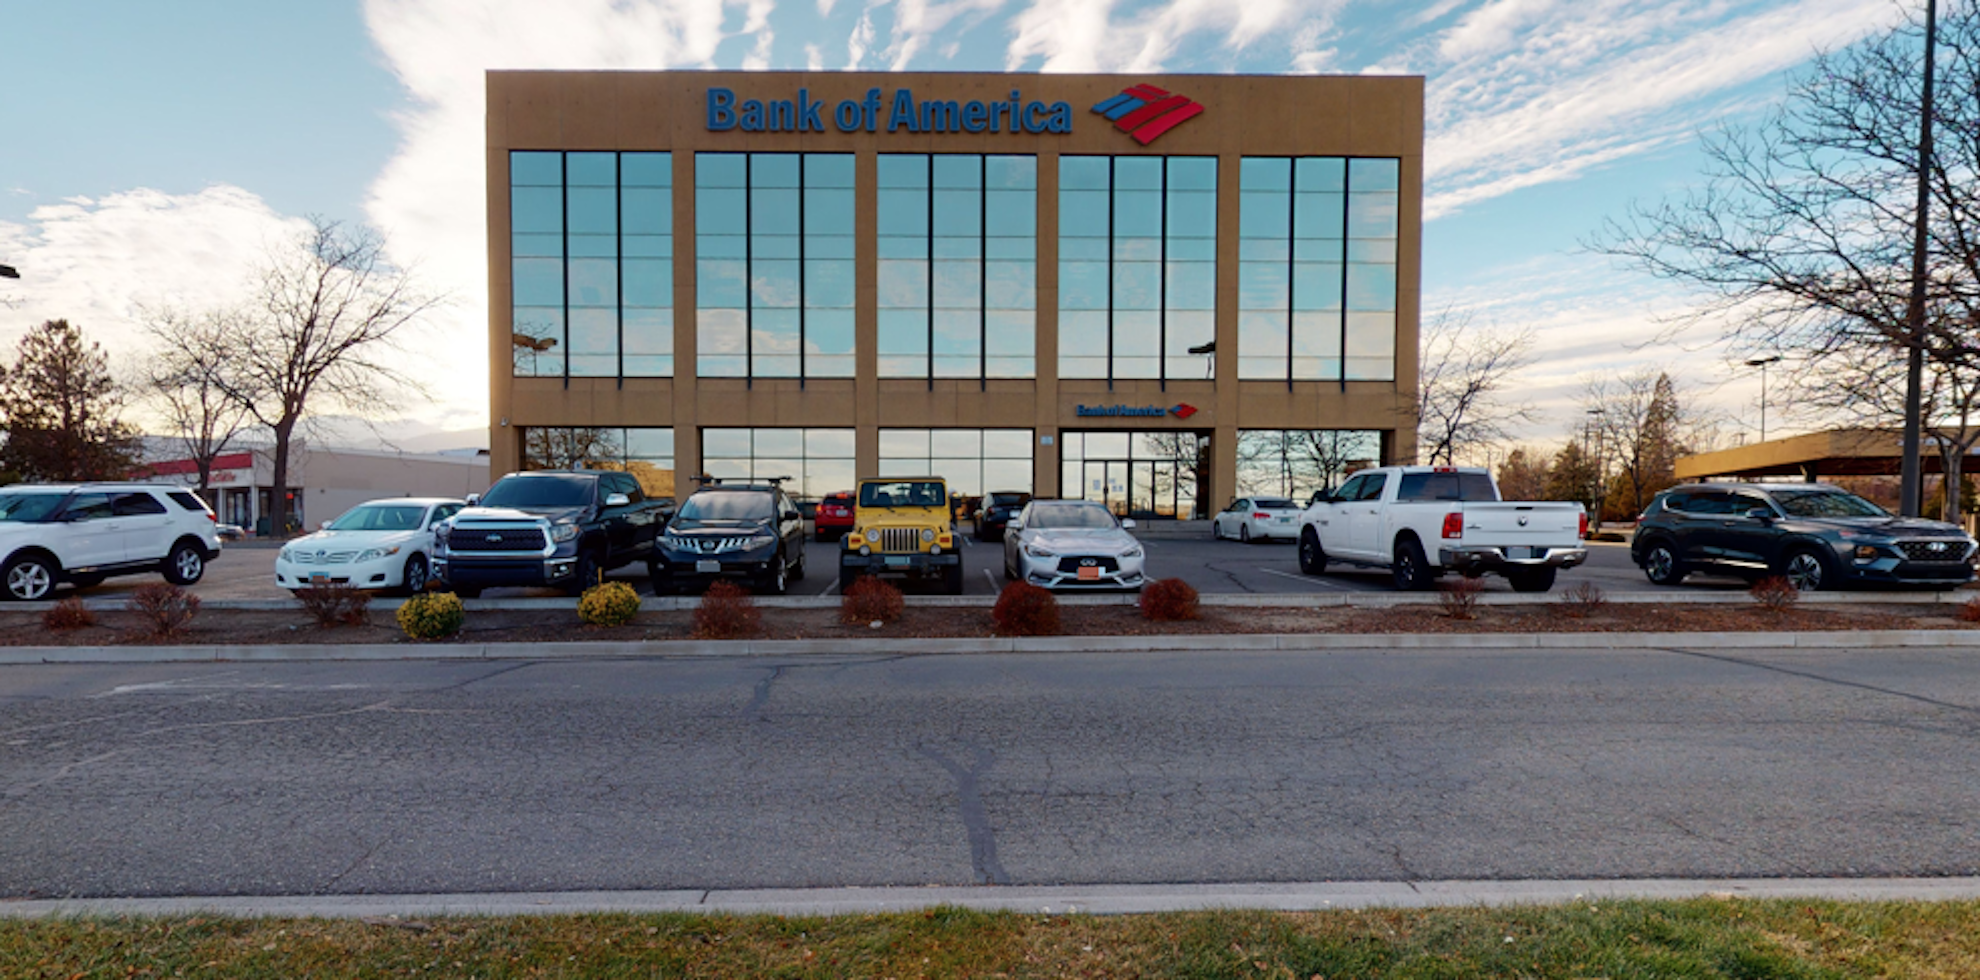 Bank of America financial center with drive-thru ATM | 5905 S Virginia St, Reno, NV 89502